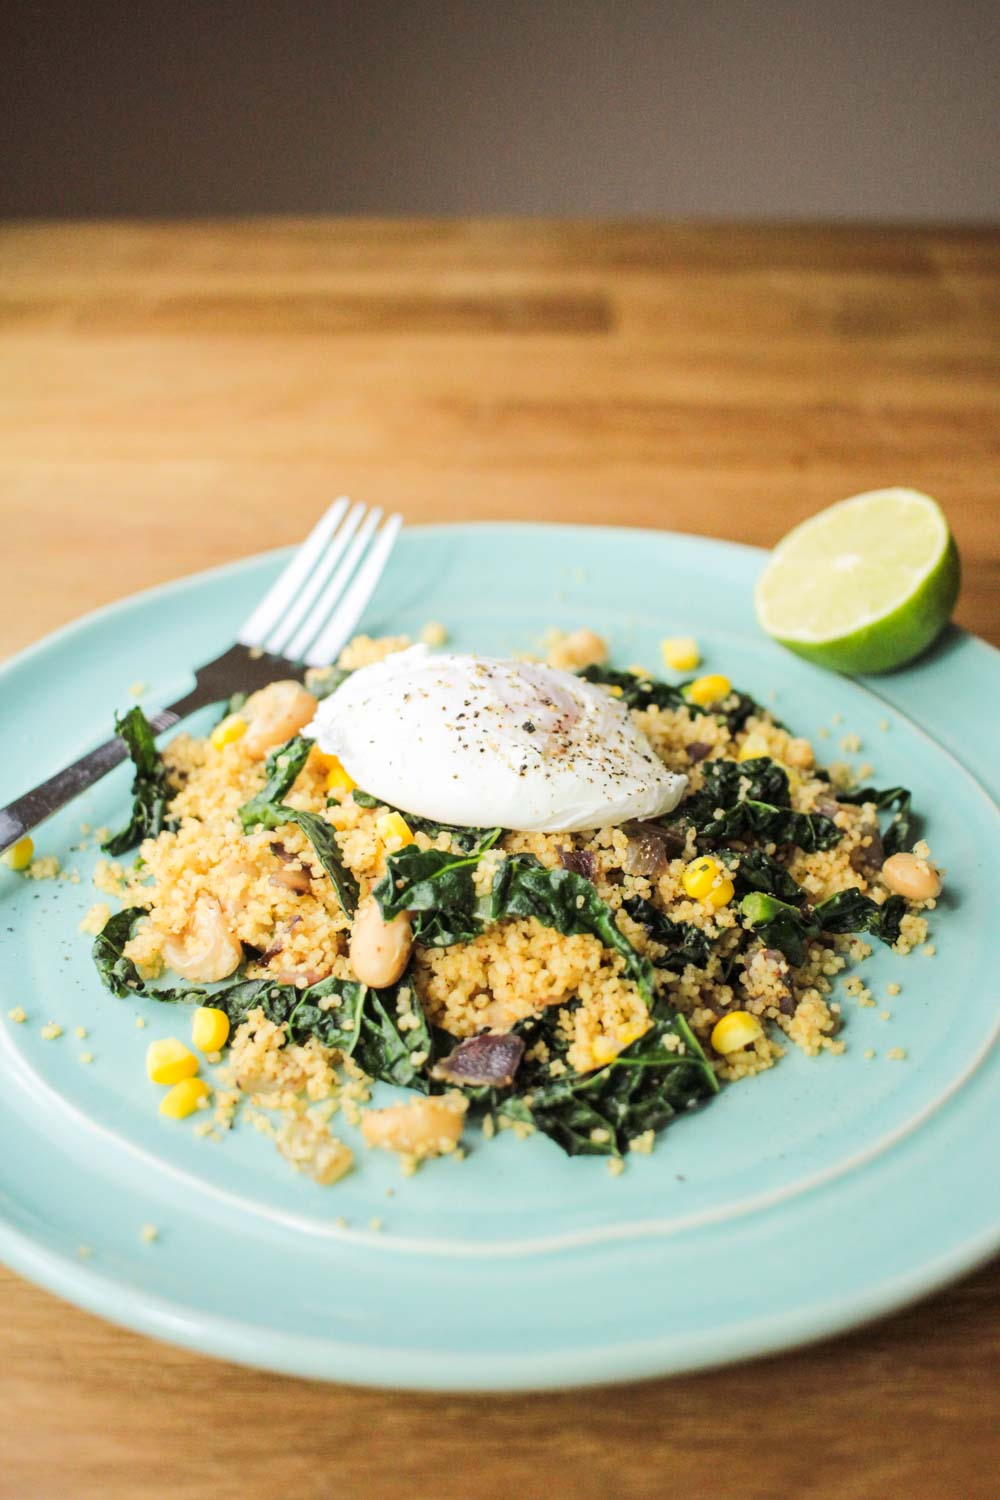 Fragrant Couscous Salad with a Runny Poach Egg-2 - Globe Scoffers | globescoffers.com